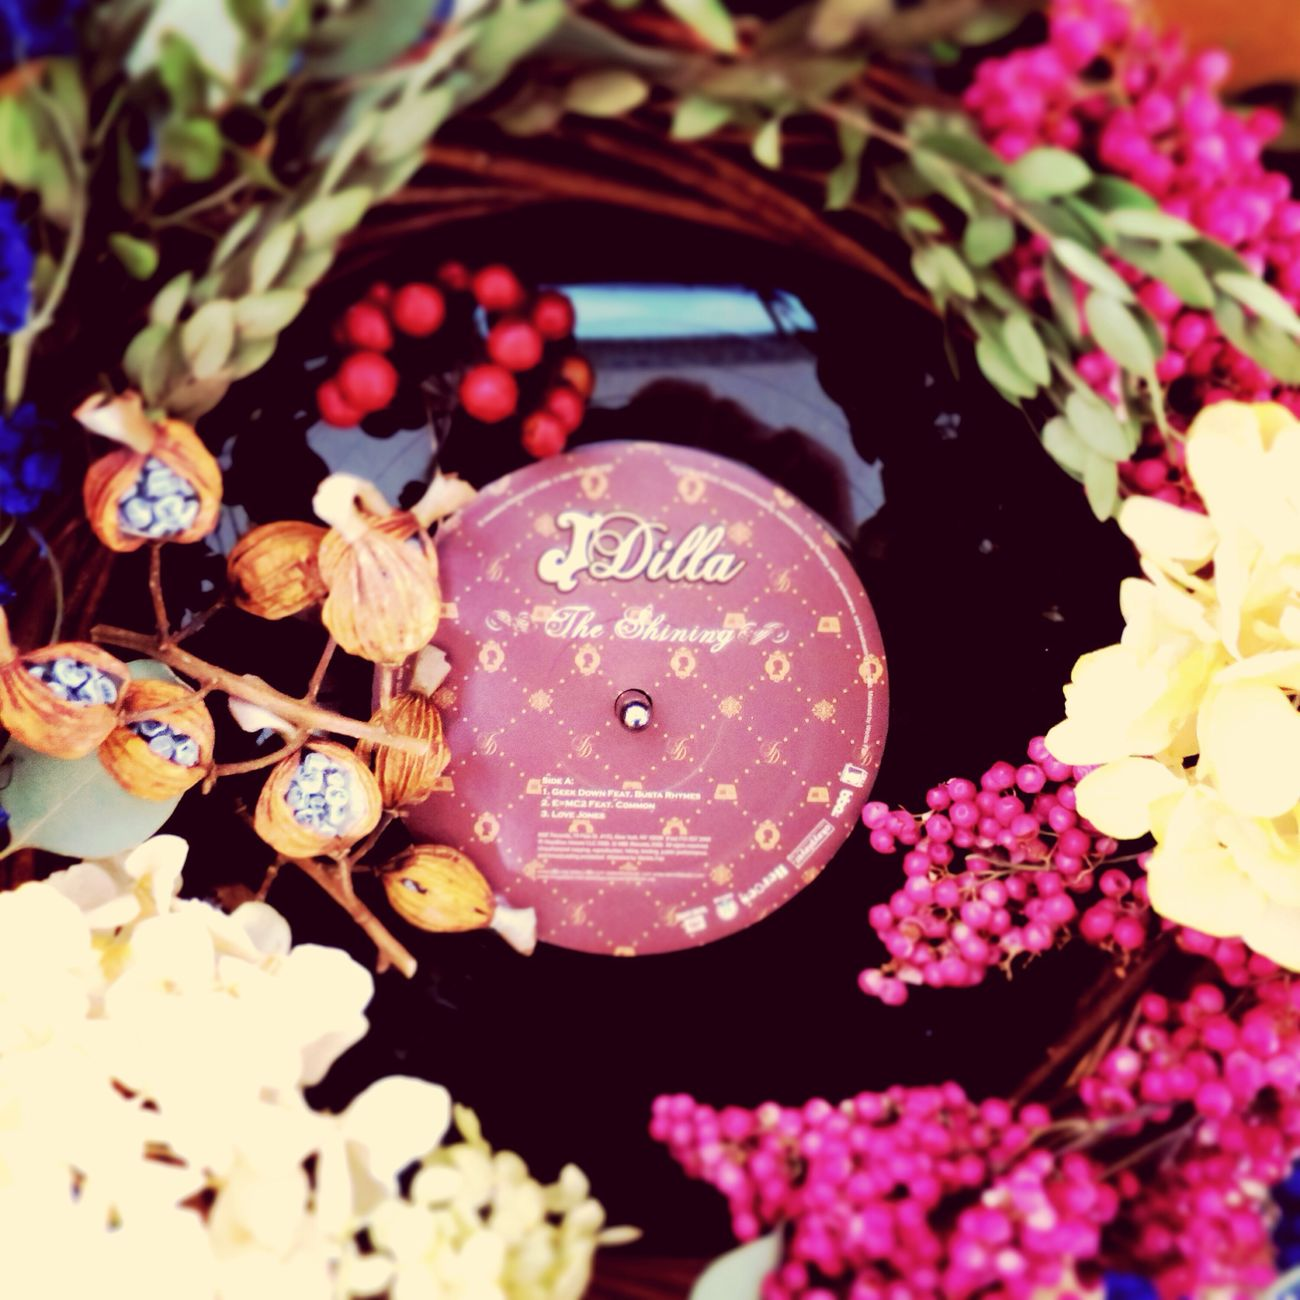 Jdilla Forever Love It Records Flowers